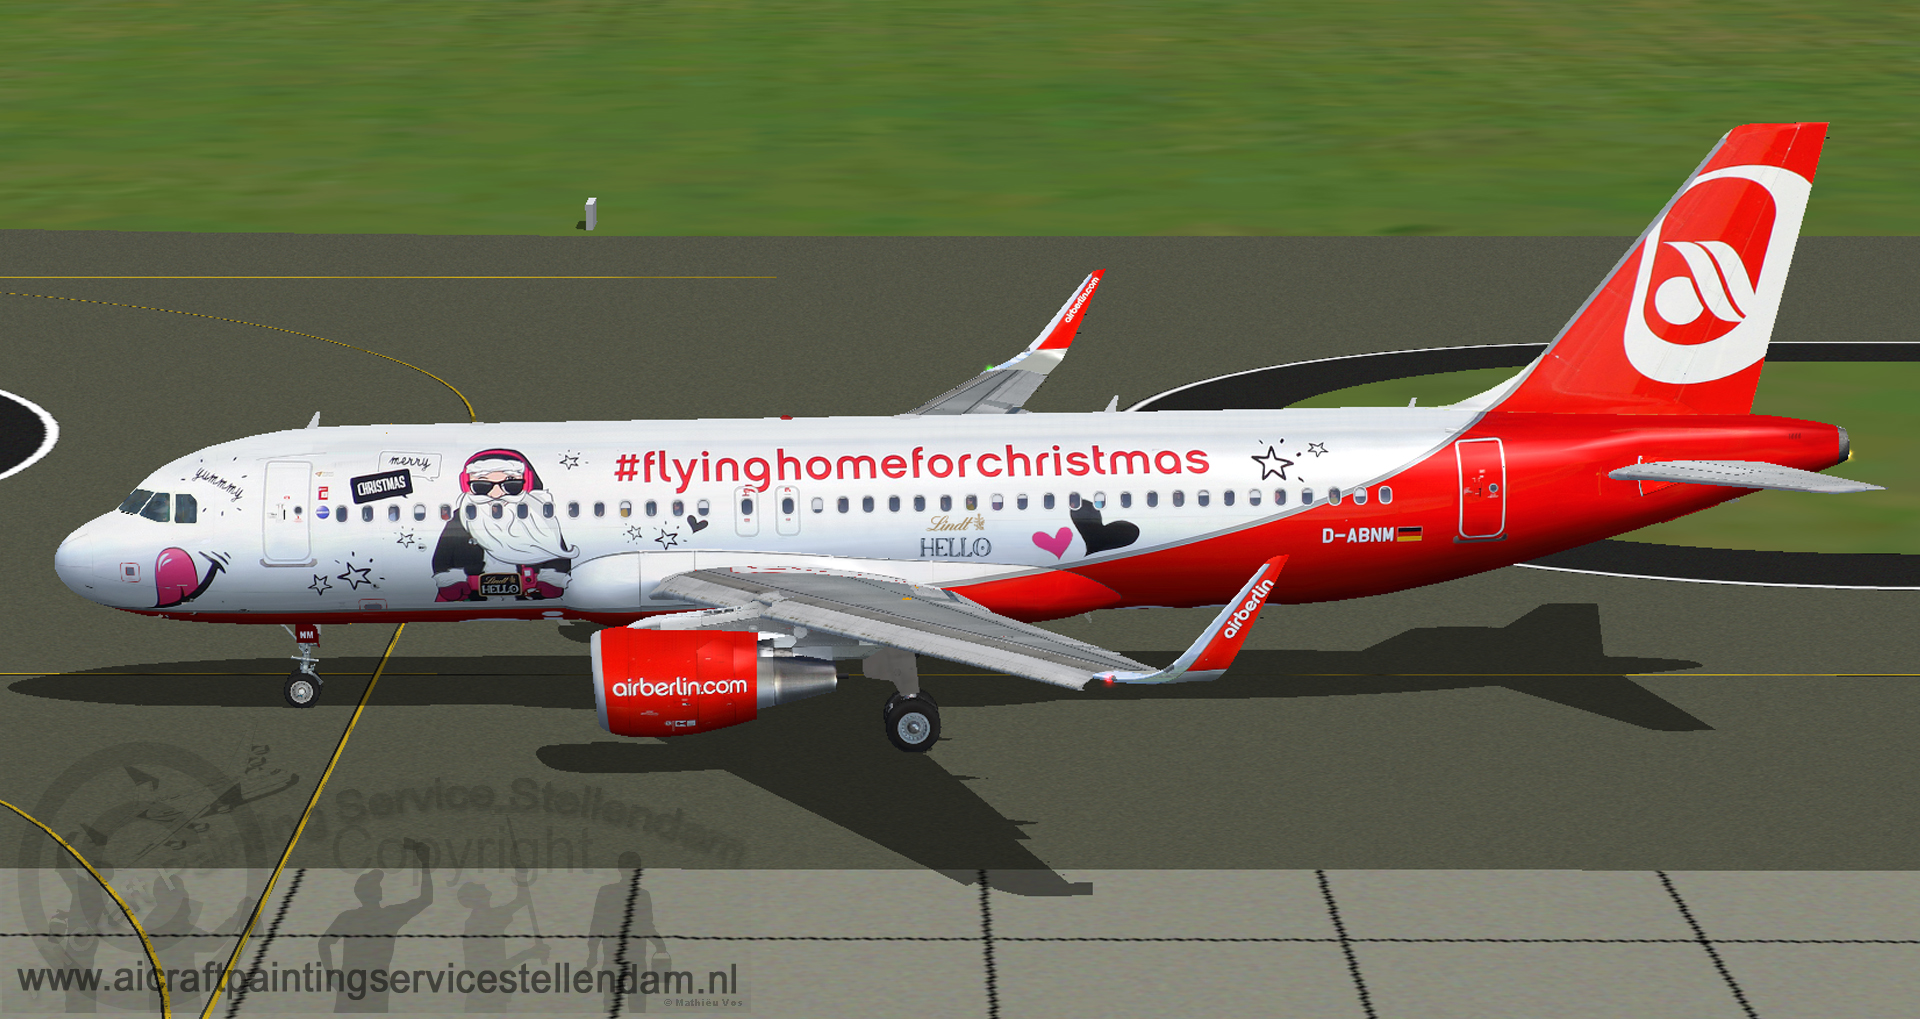 ProjectAirbusA320-214AirBerlin_FlyingHomeForChristmas2015_D-ABNM